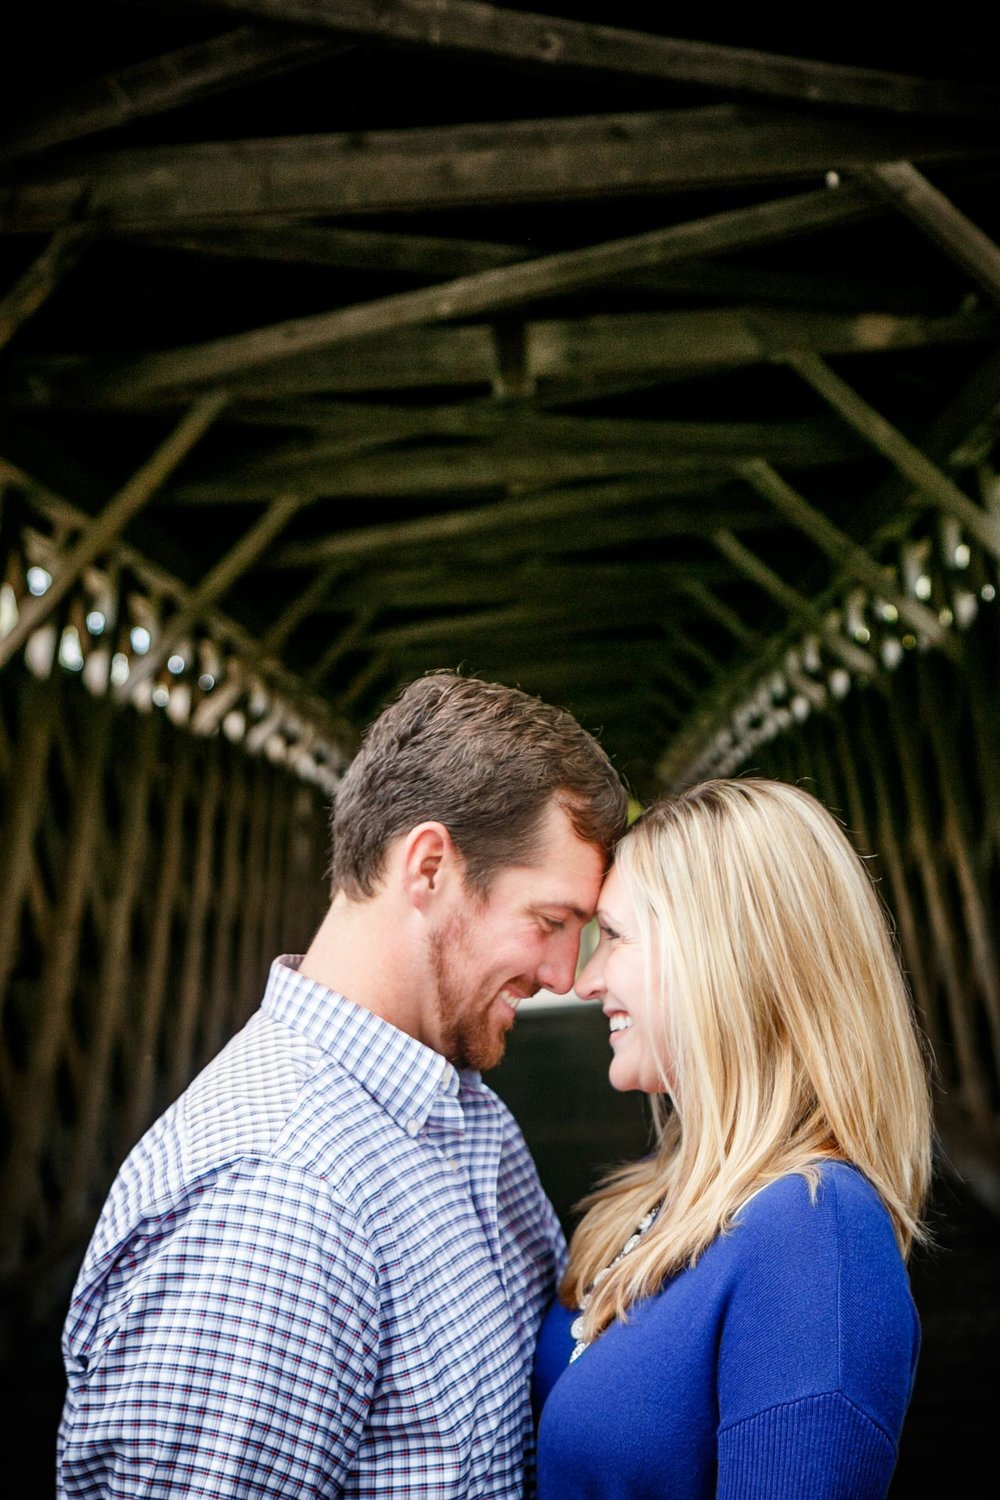 covered-bridge-park-wisconsin-engagement-adam-shea-photography-green-bay-appleton-neenah-photographer-2.jpg